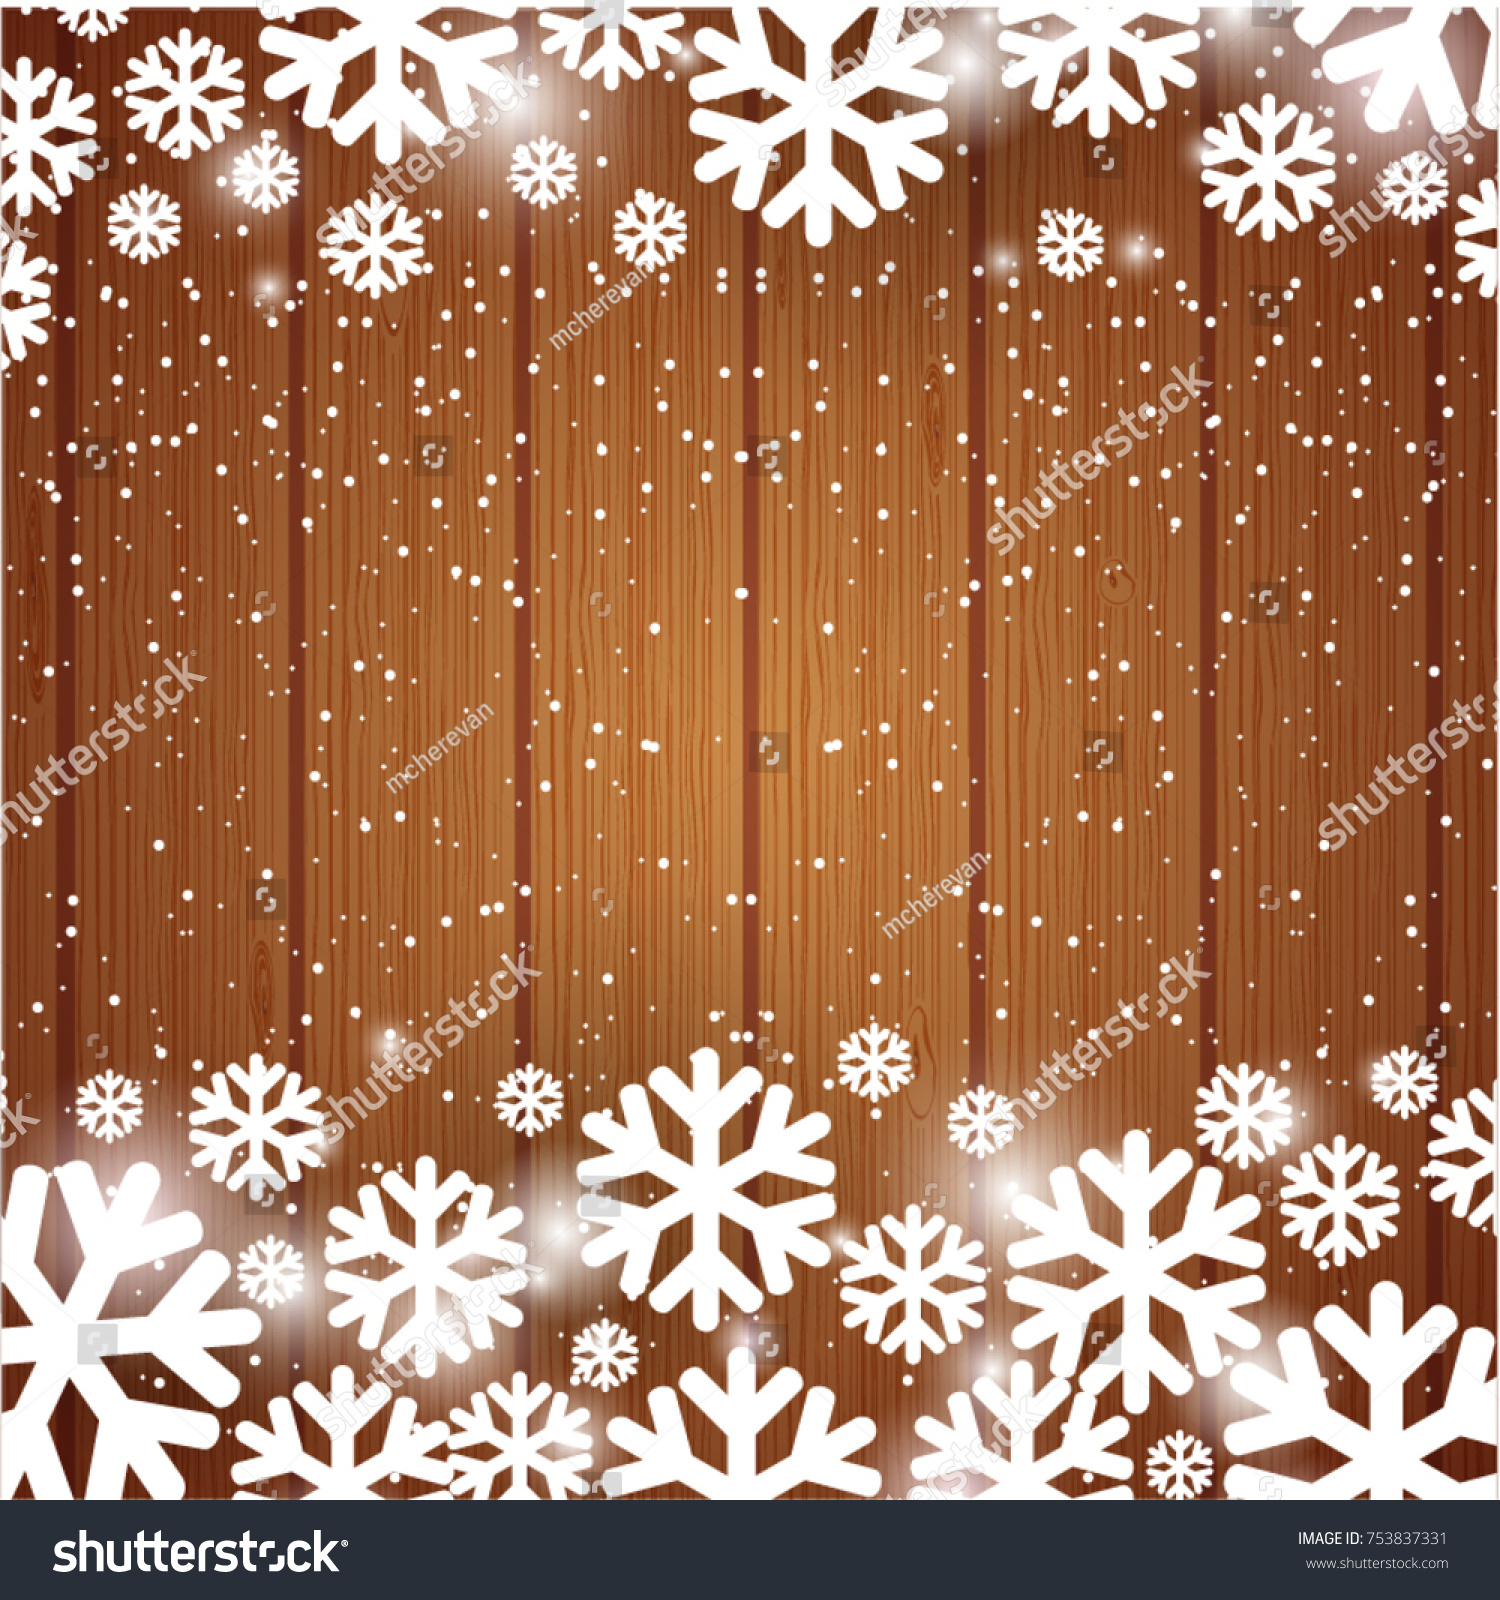 illustration for christmas or new year card snowflakes on wooden planks background